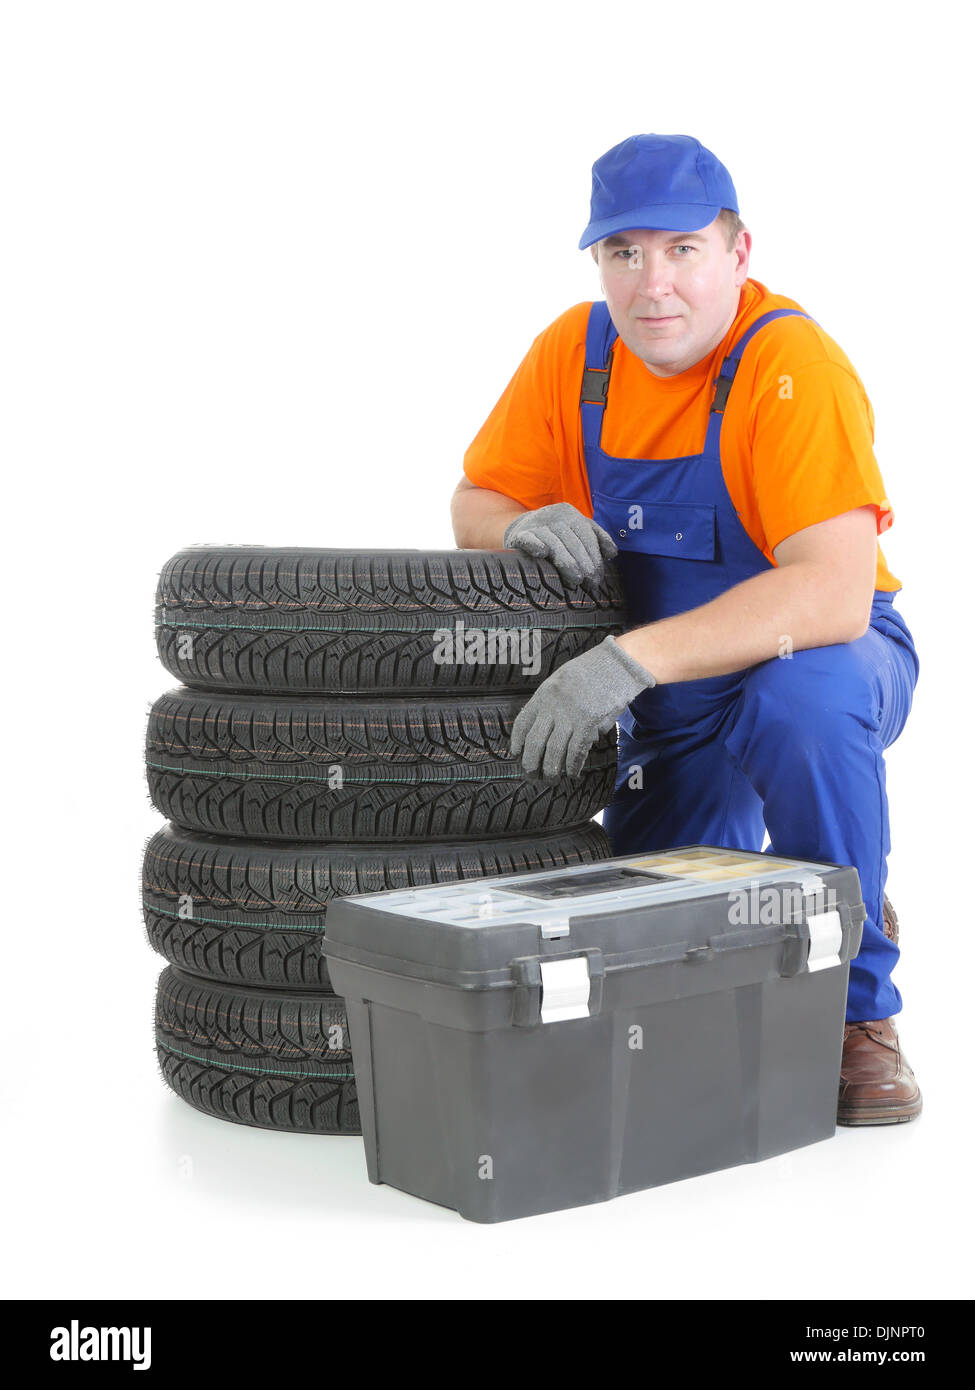 Mechanic wearing blue coveralls and orange t-shirt posing by pile of four new car tires and toolbox shot on white - Stock Image